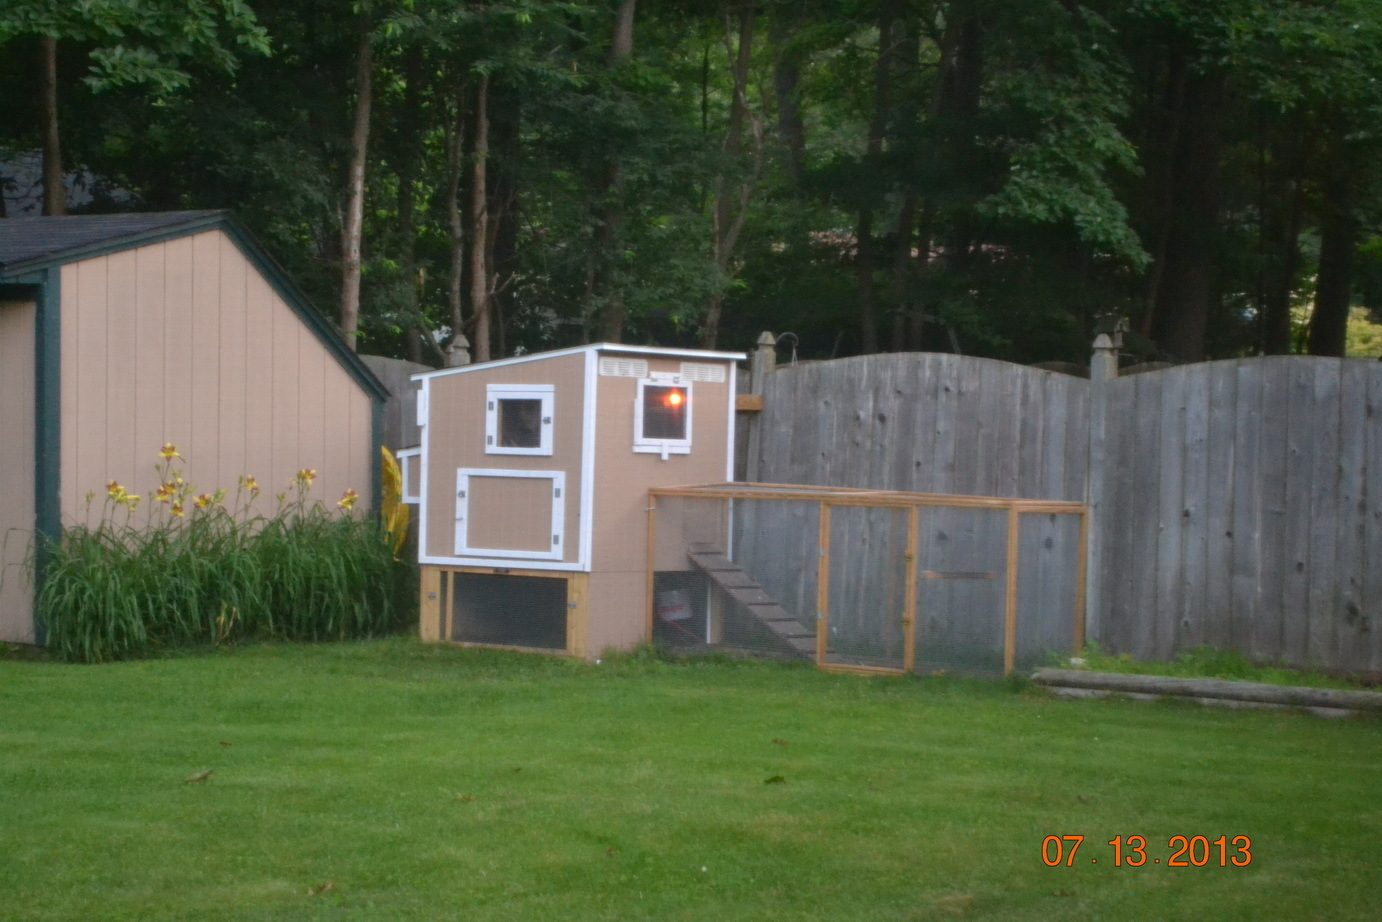 automatic chicken coop door for only 5 bucks with a radio antenna